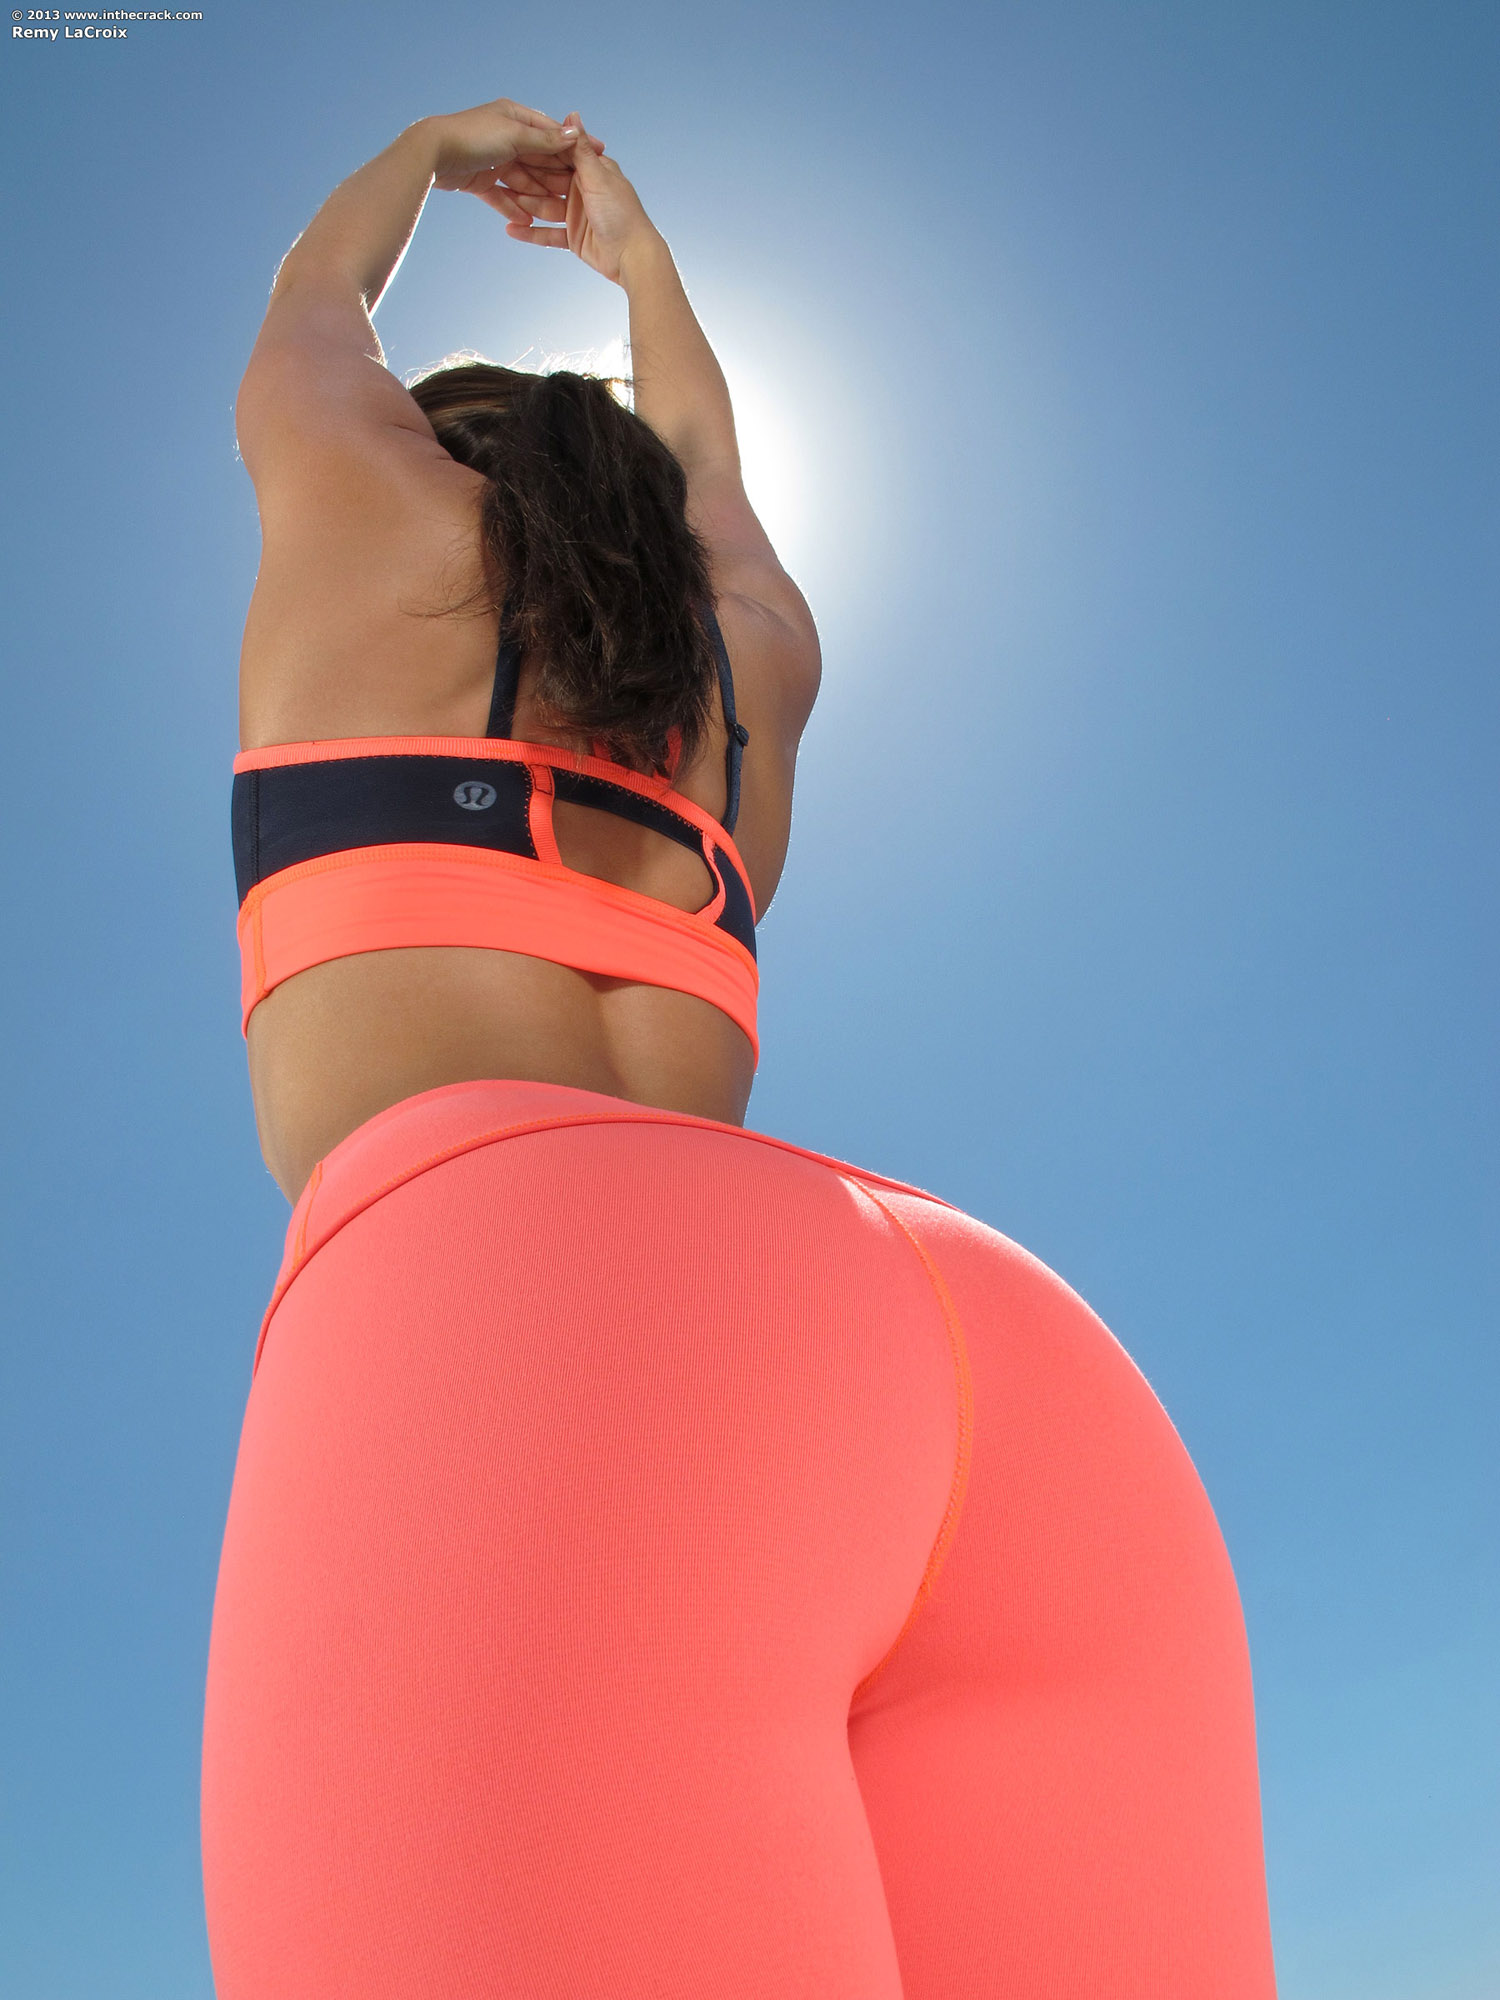 Seems Remy lacroix yoga pants opinion